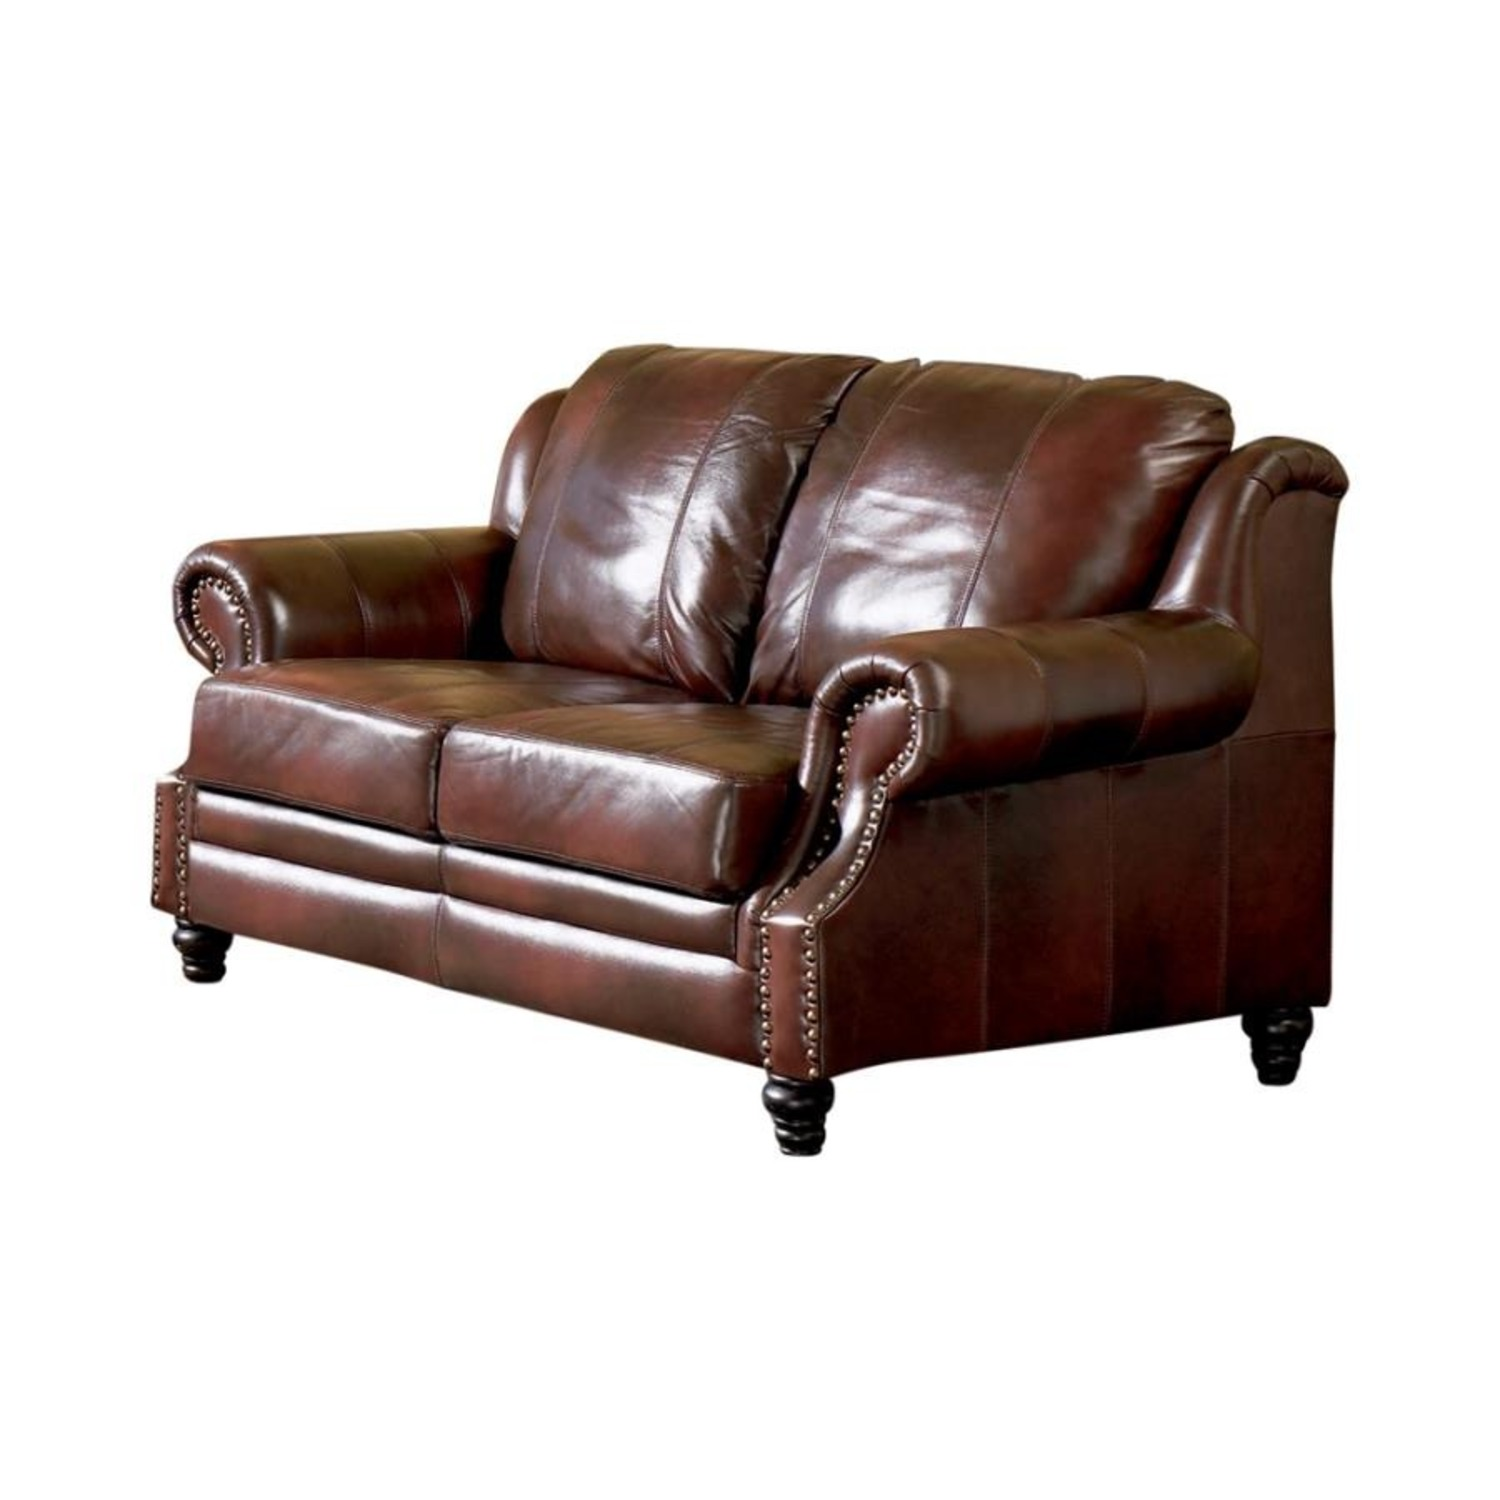 Loveseat In Burgundy Hand Rubbed Leather - image-0